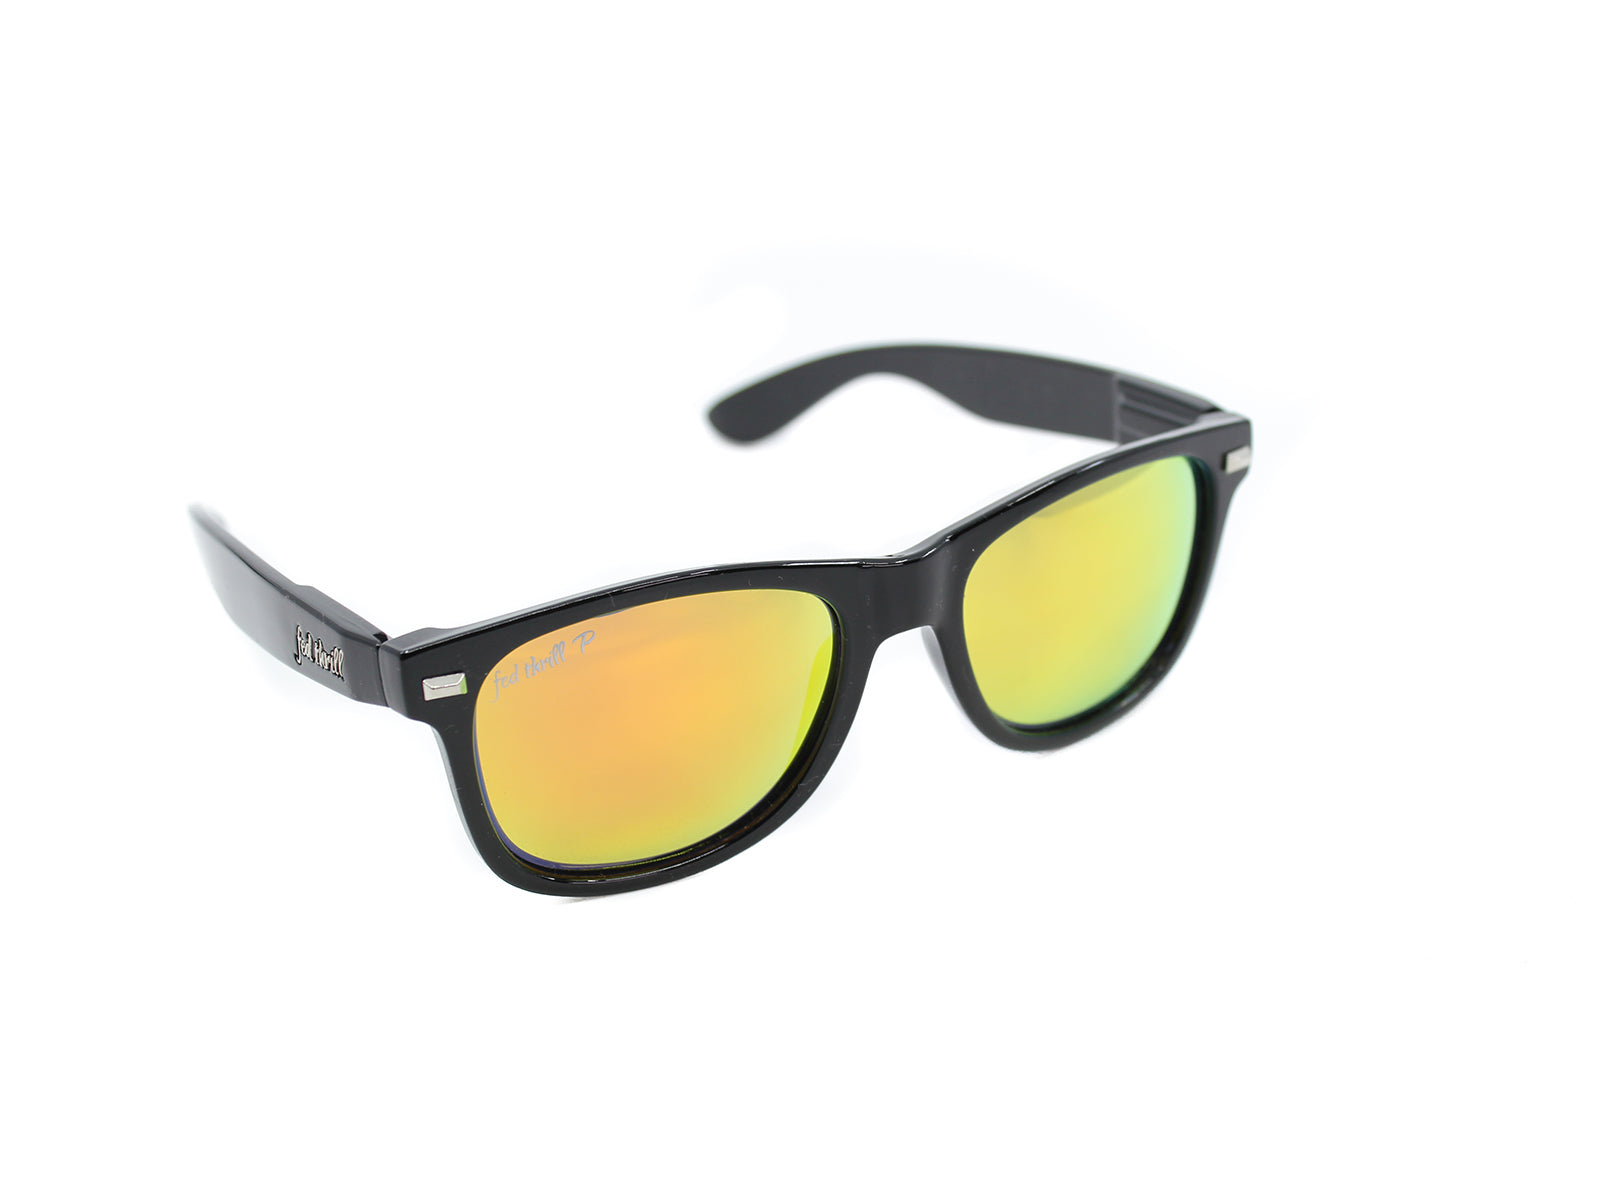 Fultons - Towsons: Glossy Black / Mirrored Orange Polarized